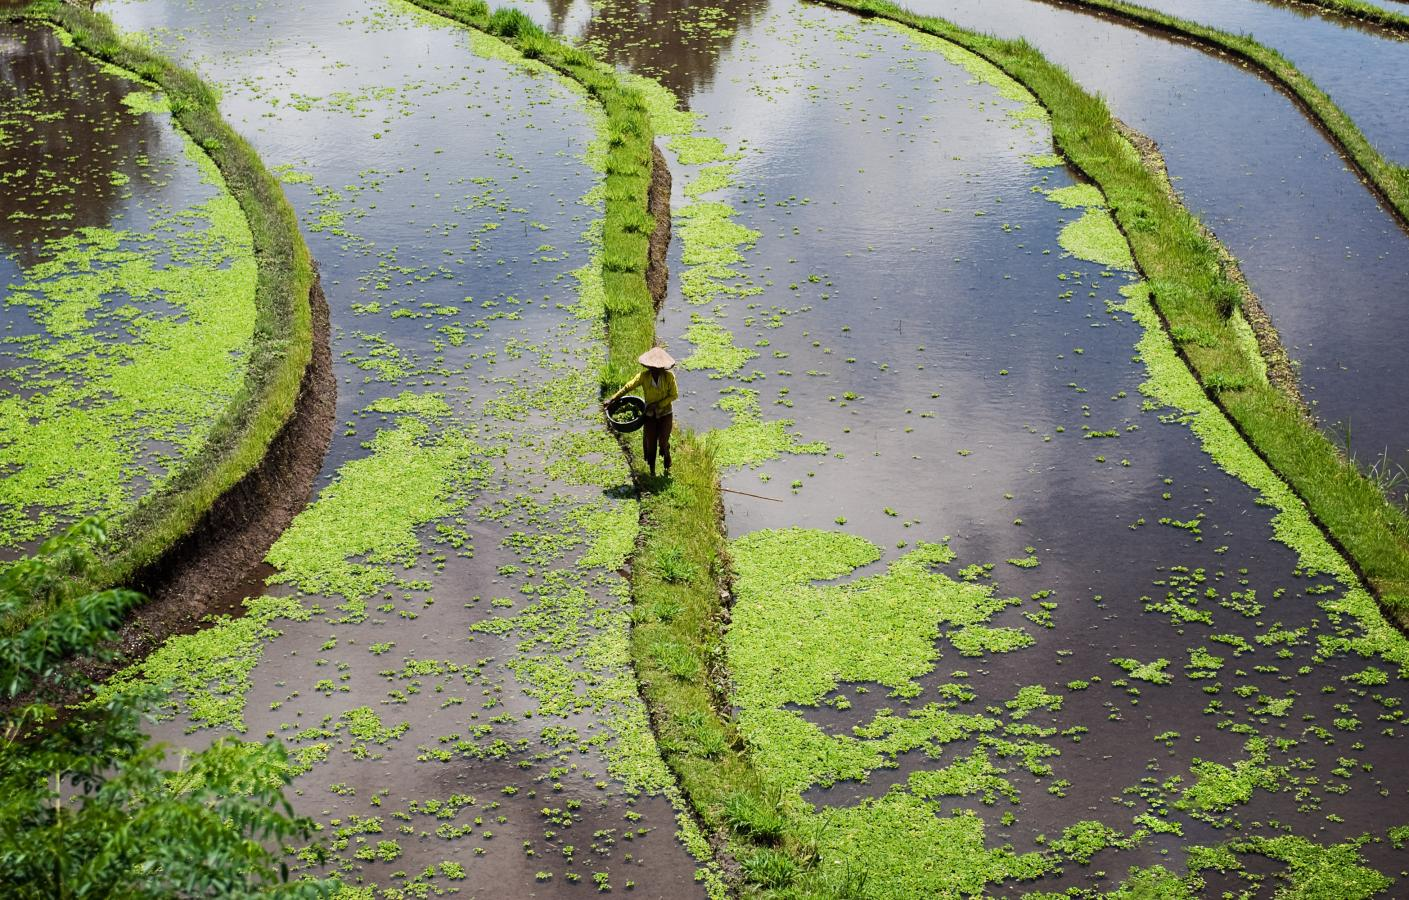 working-in-a-rice-paddy-field-around-amed-bali-2010